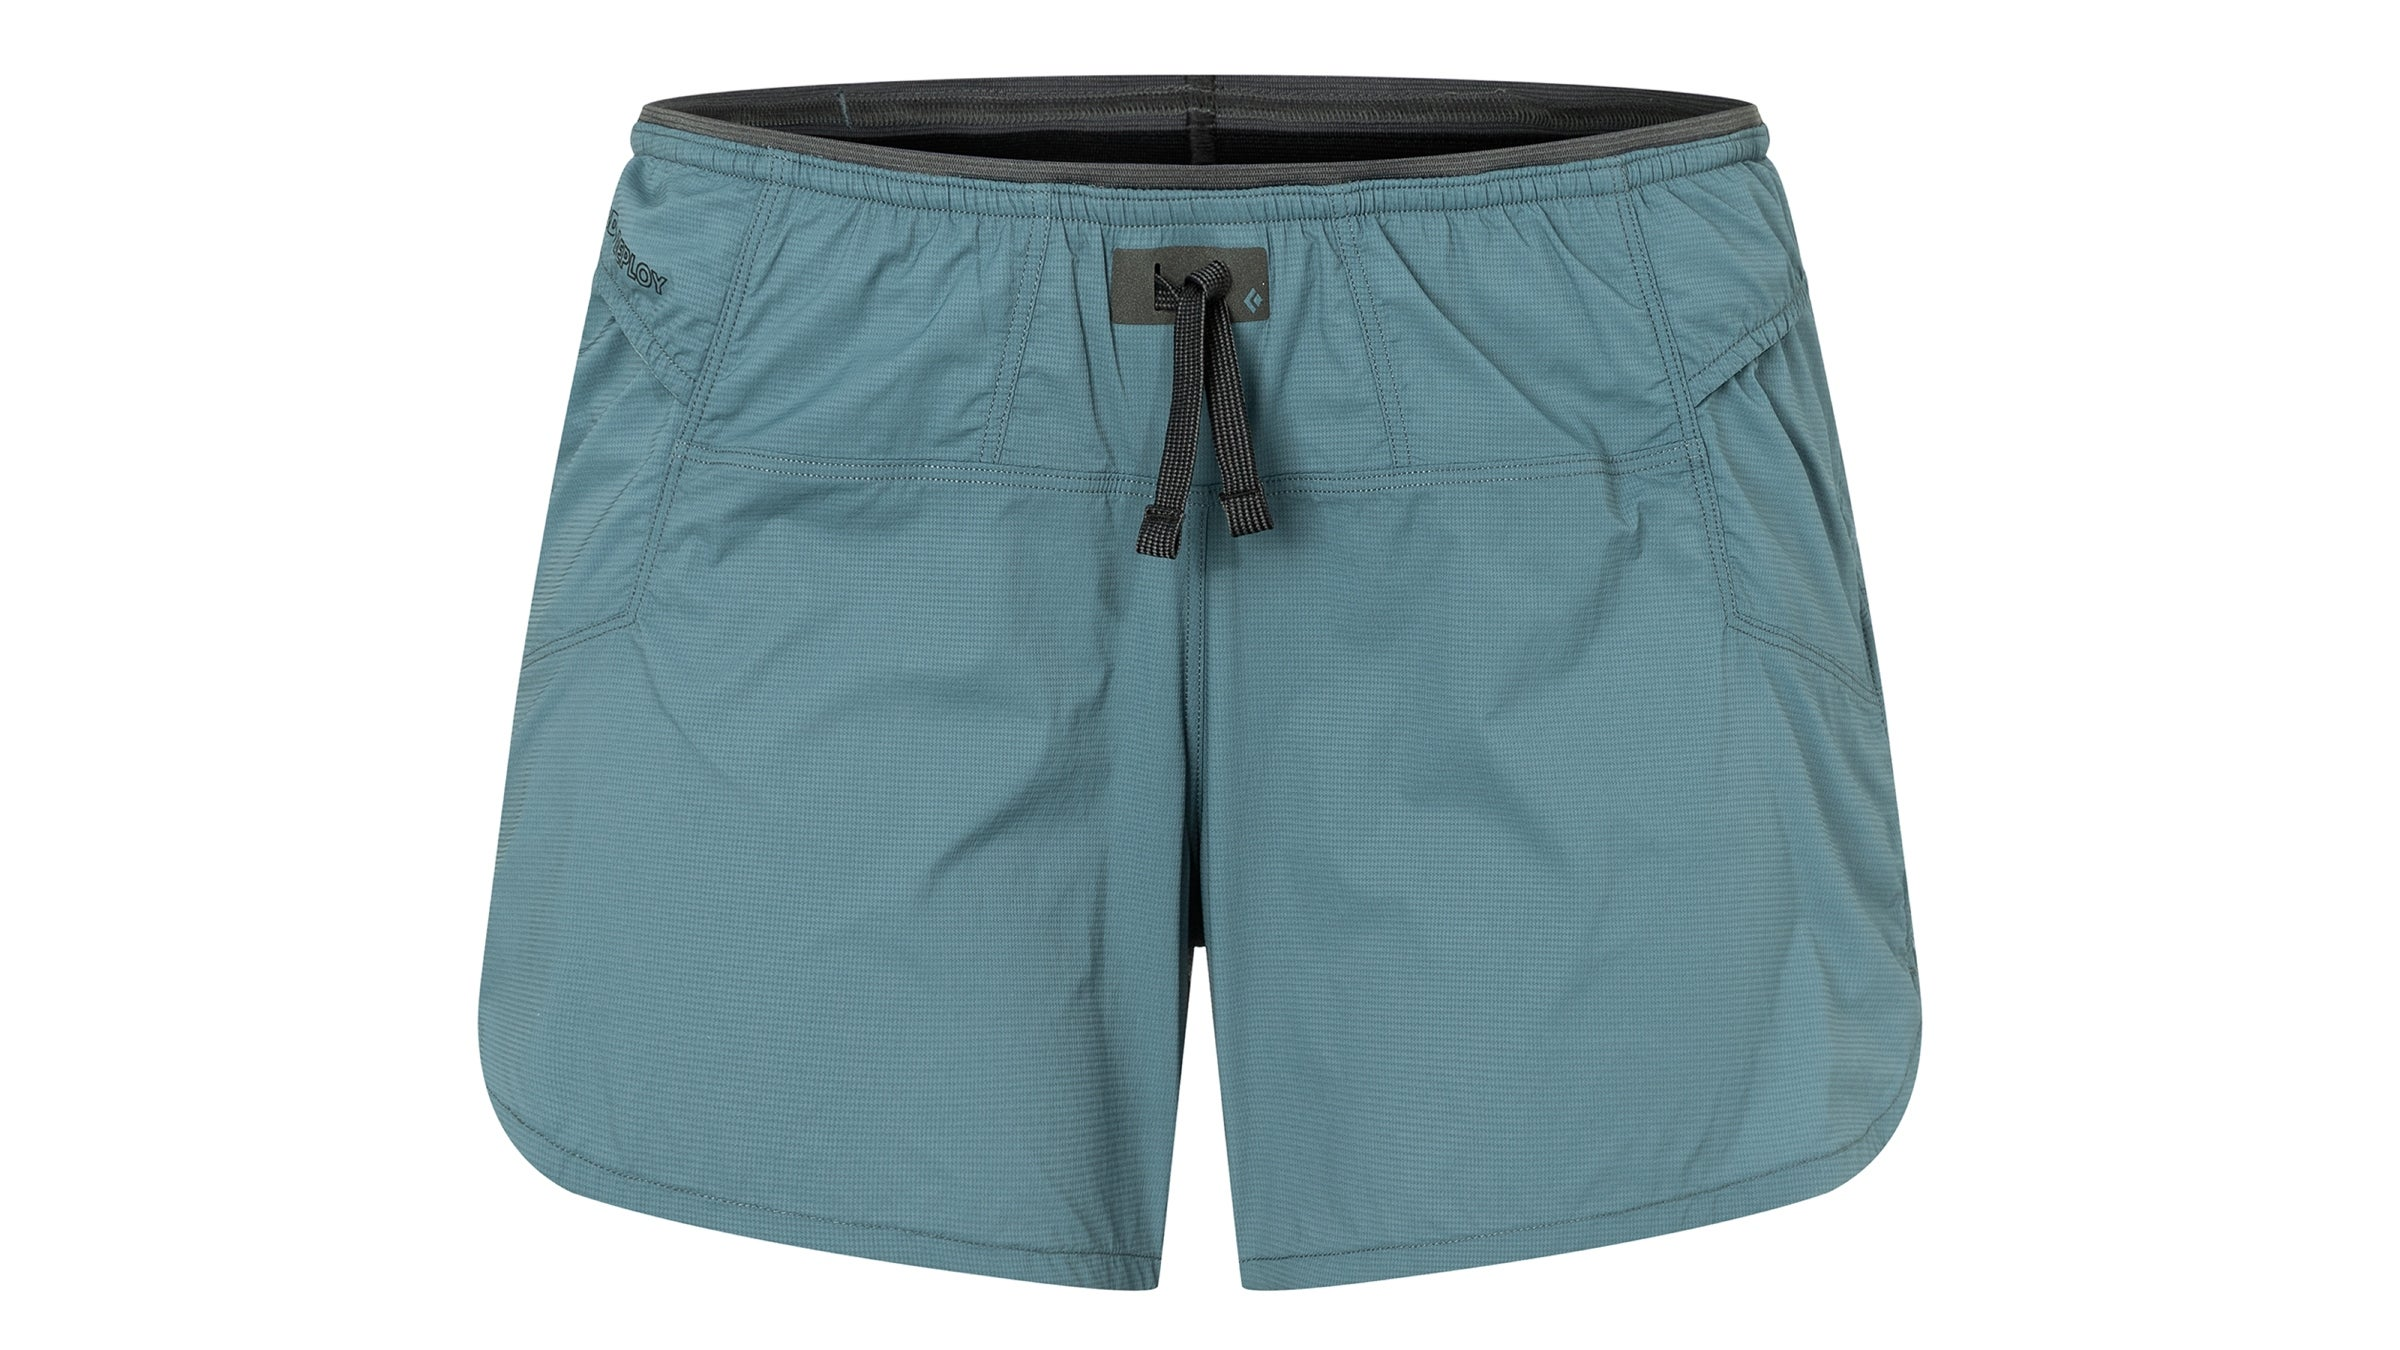 Women's dark teal Black Diamond sprint shorts